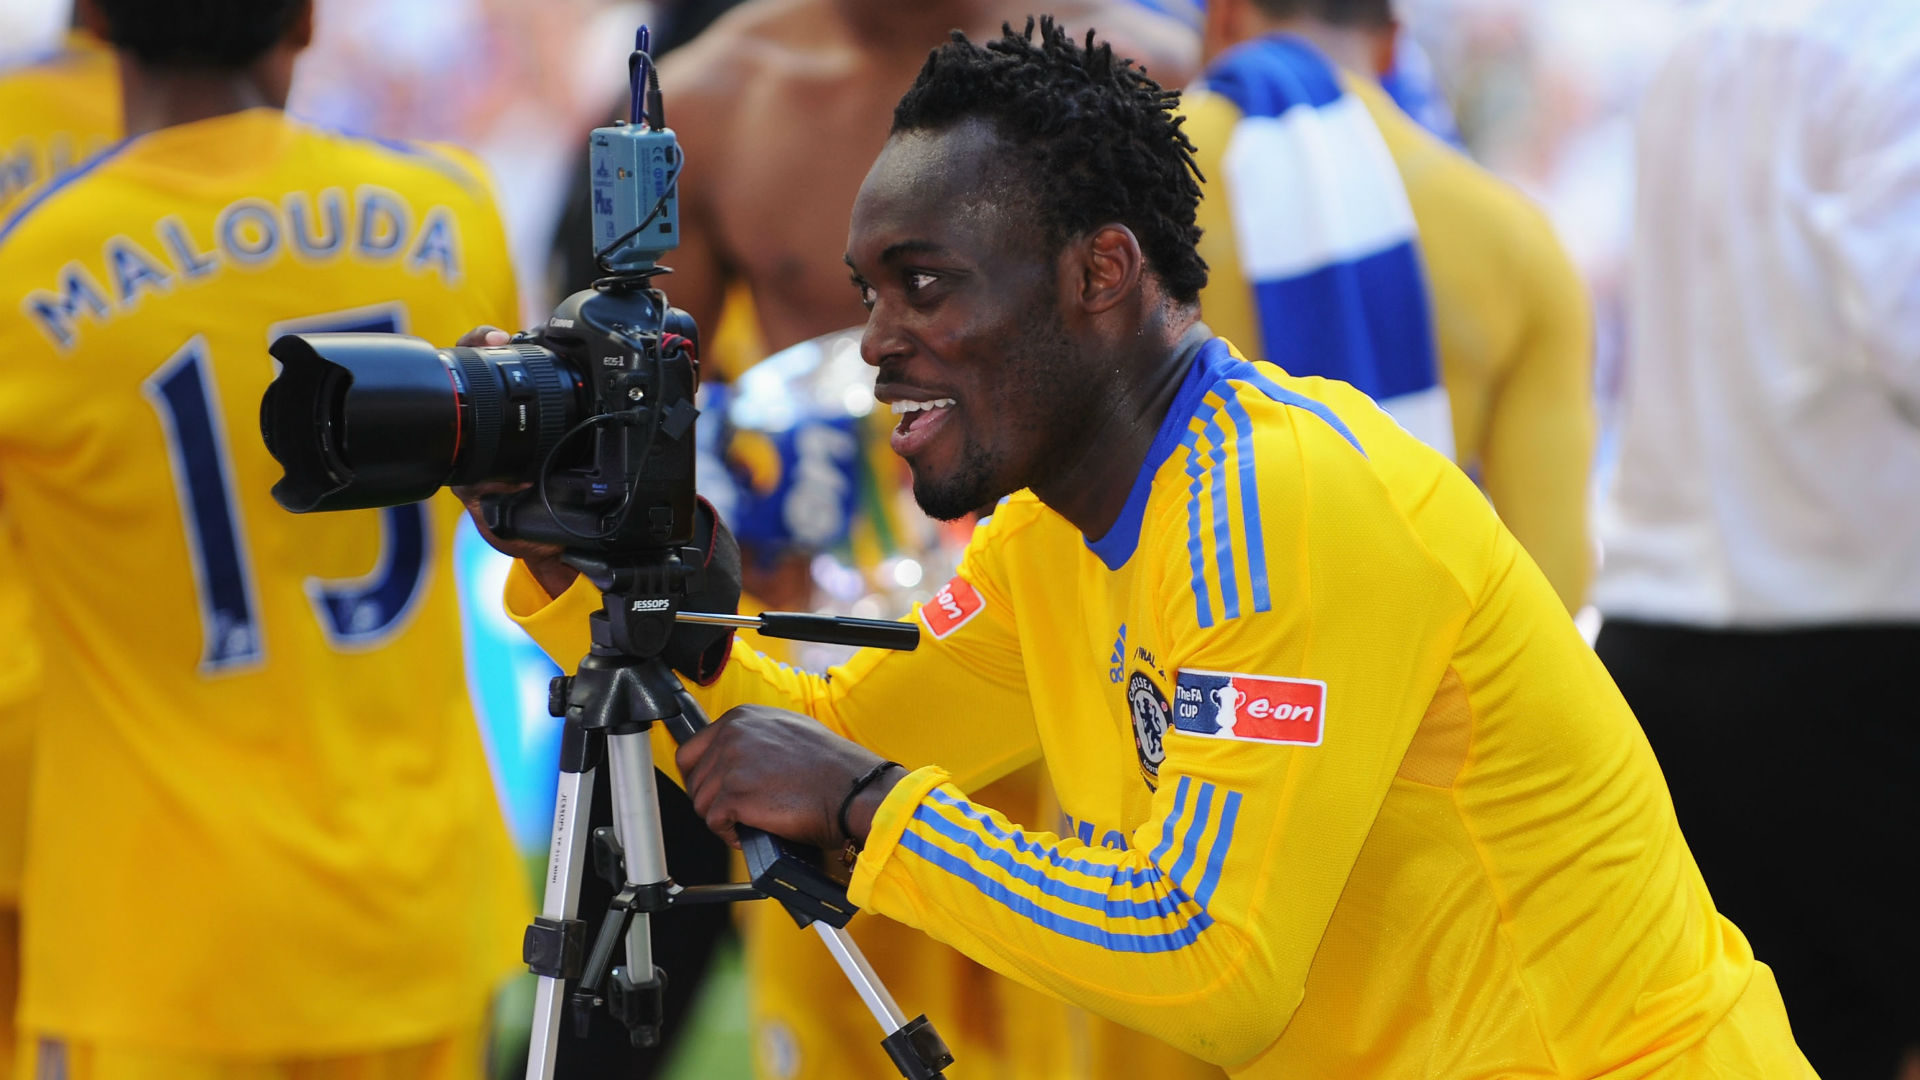 Michael Essien training in Chelsea kit Video